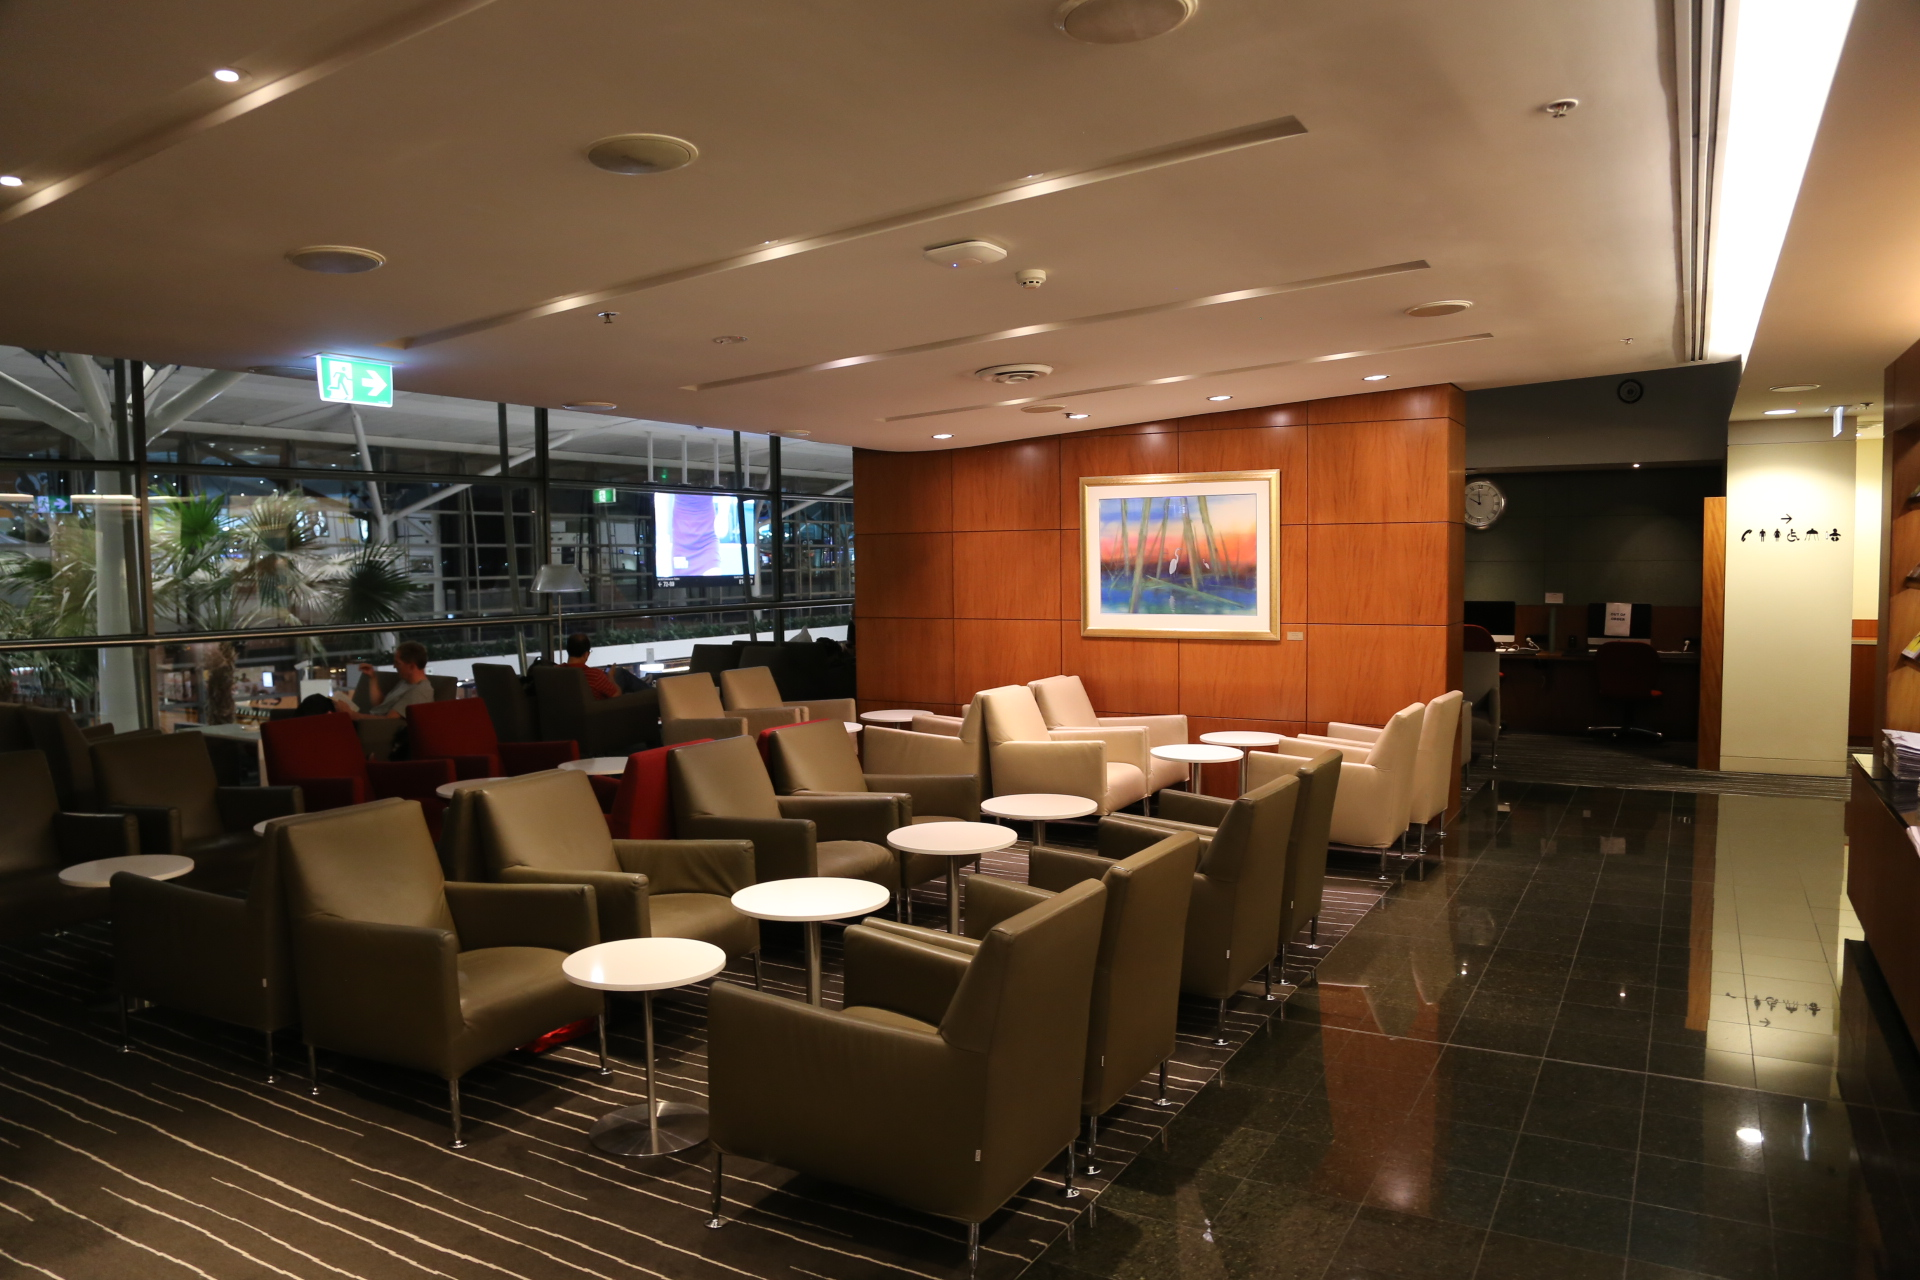 Qantas BNE International Business and First Class Lounge